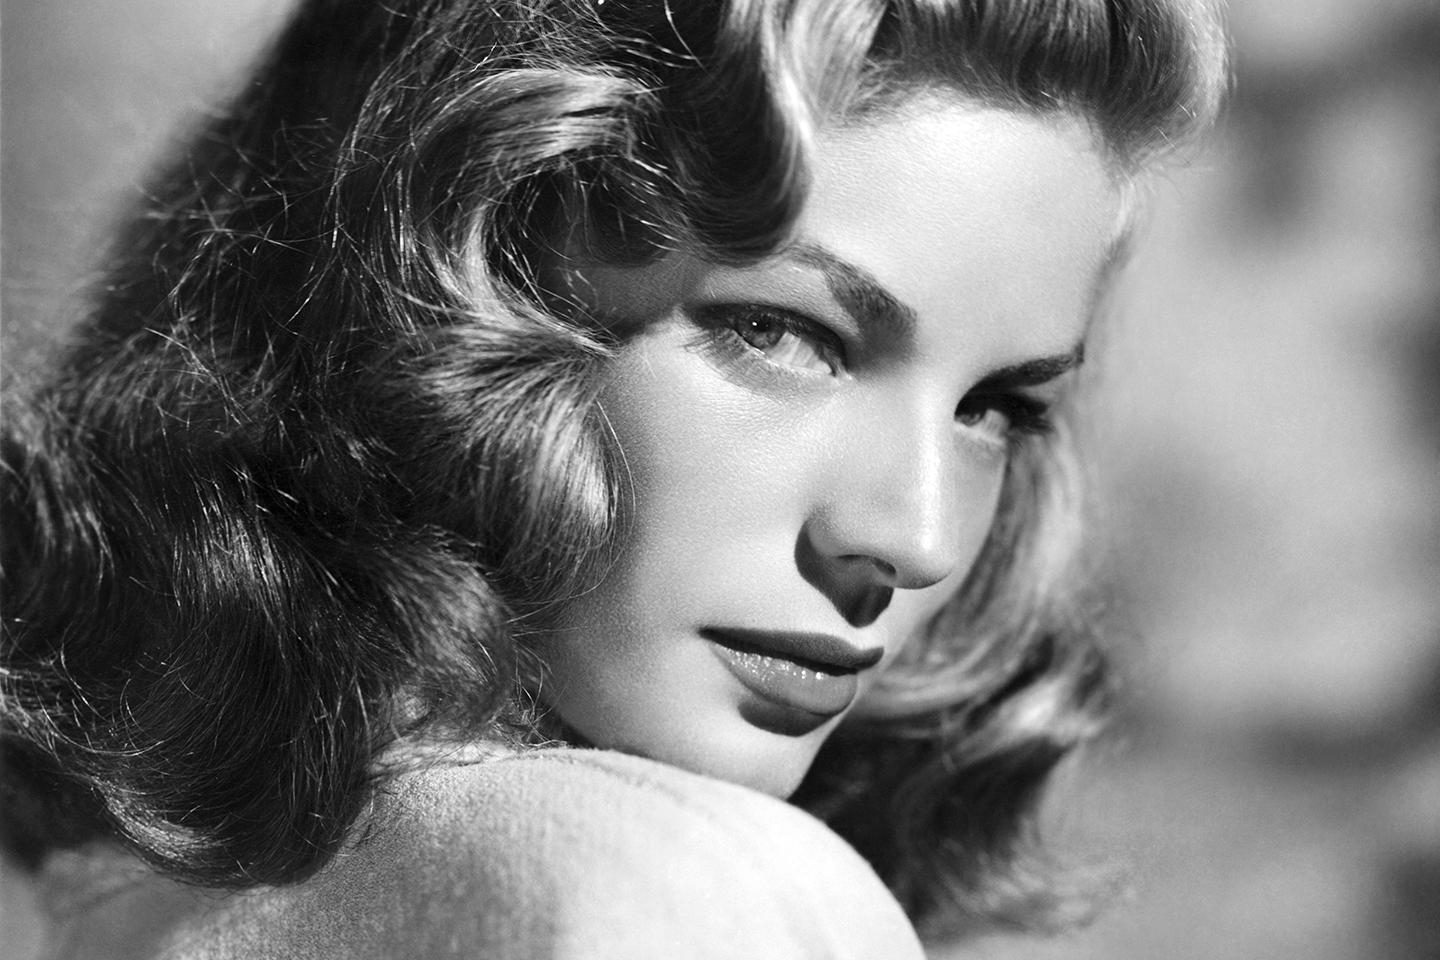 Burmese rain drums and Fonda's fedora: Lauren Bacall's unusual collections http://t.co/sYkRAOwT4k http://t.co/FgLaXKrCOS